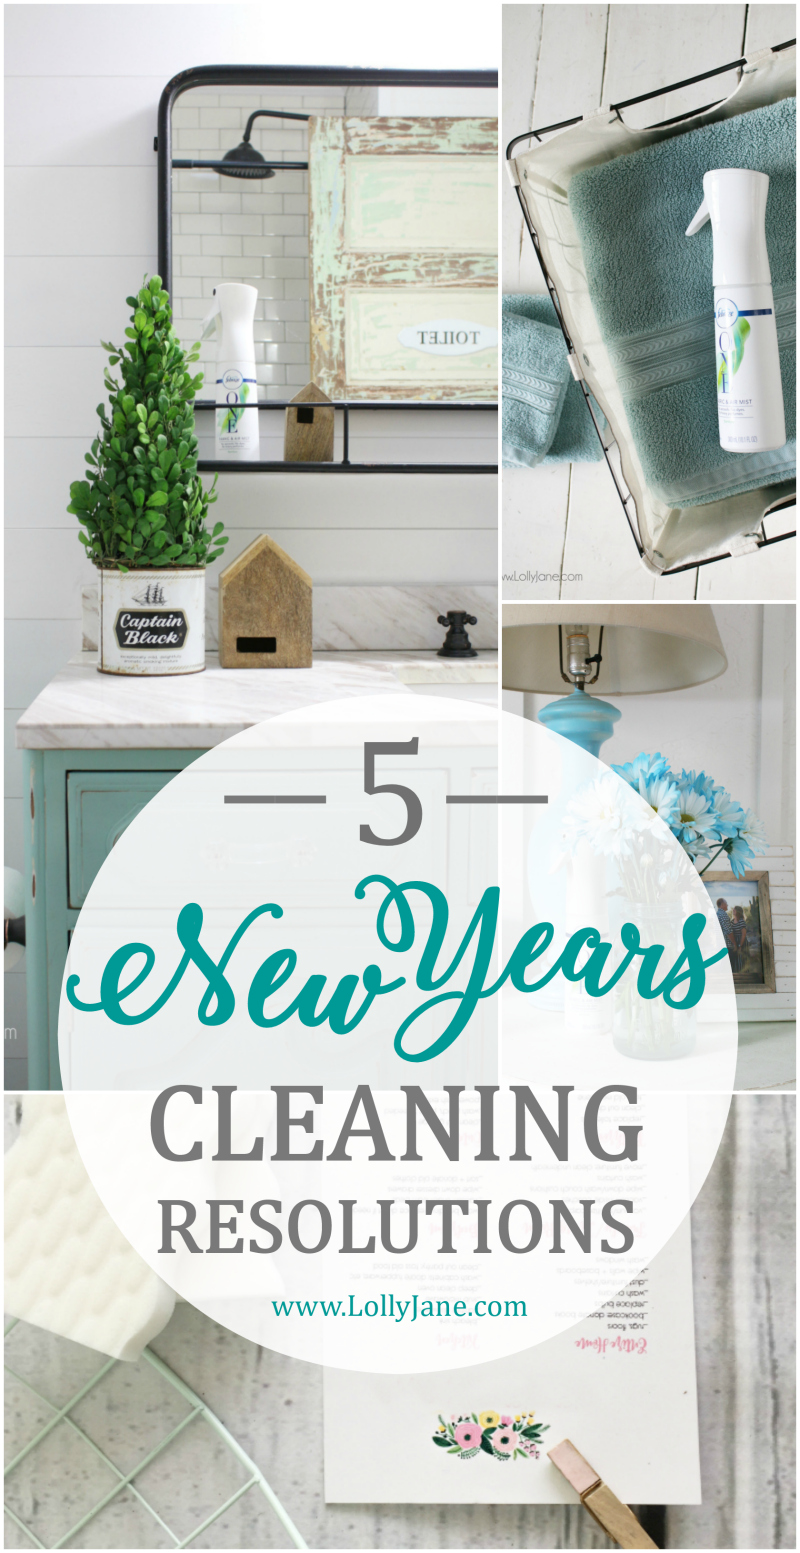 5 New Years cleaning resolutions tips to keep your house in order for the new year! Love these easy to follow cleaning tips for a clean house all year long!